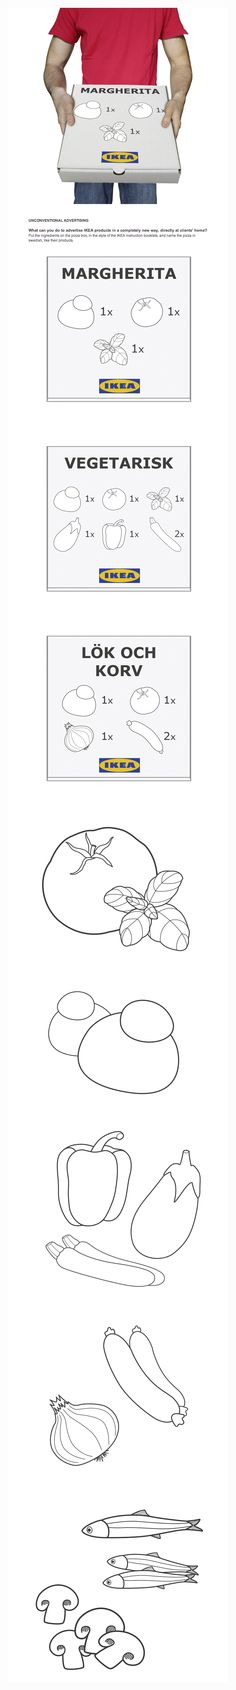 Unconventional advertising made for IKEA - What can you do to advertise IKEA products in a completely new way, directly at clients' home?  Put the ingredients on the pizza box, in the style of the IKEA instruction booklets, and name the pizza in swedish, like their products.    ---    IKEA Pizza Delivery by Daniele Cagnoli, via Behance